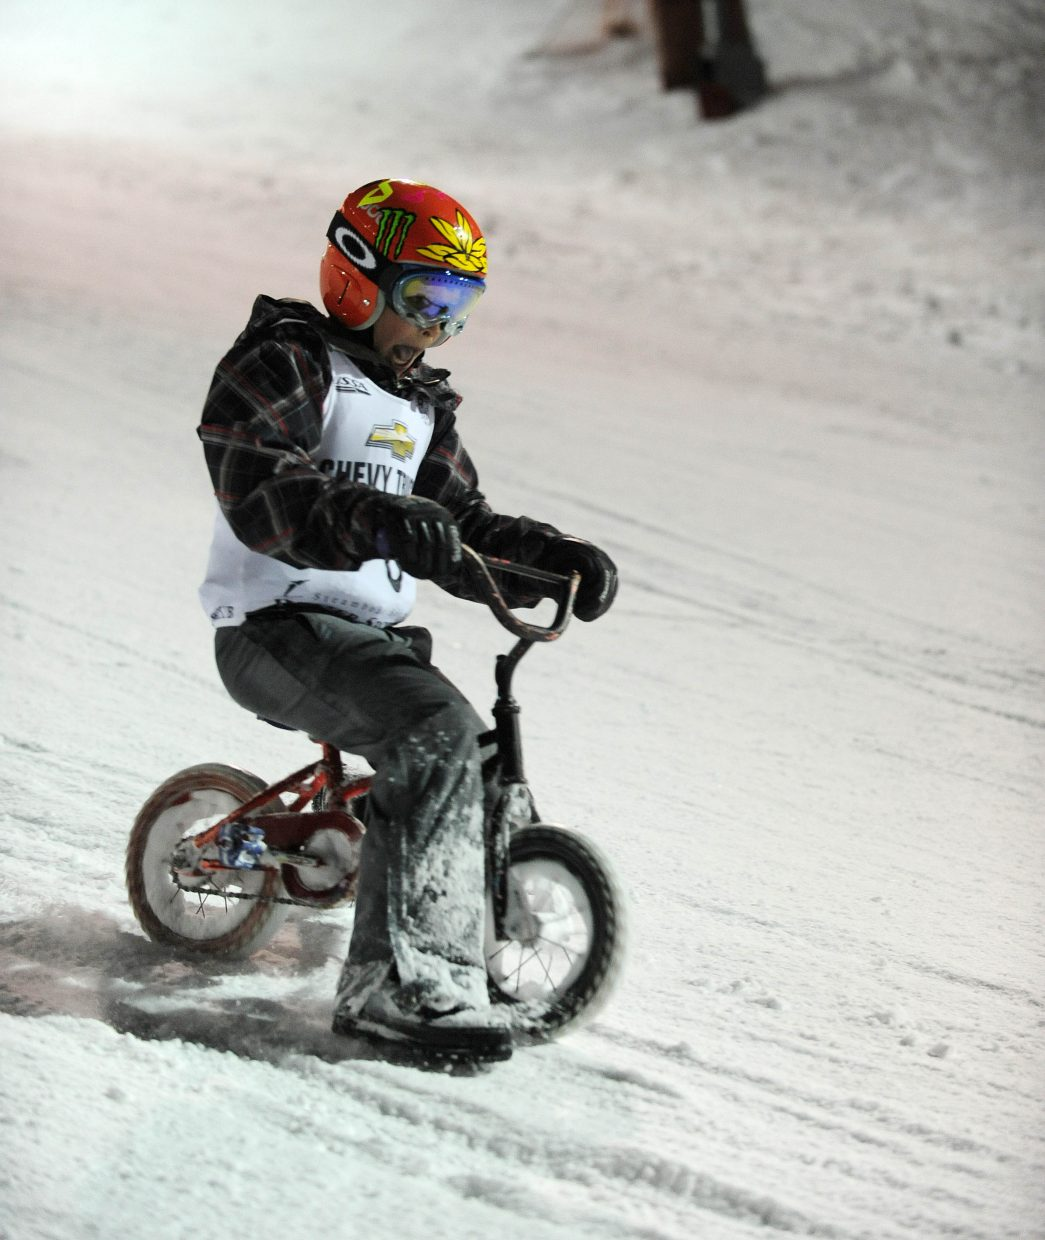 Steamboat Springs 11-year-old Matthew White also chose to go down the hill on his mini bike.